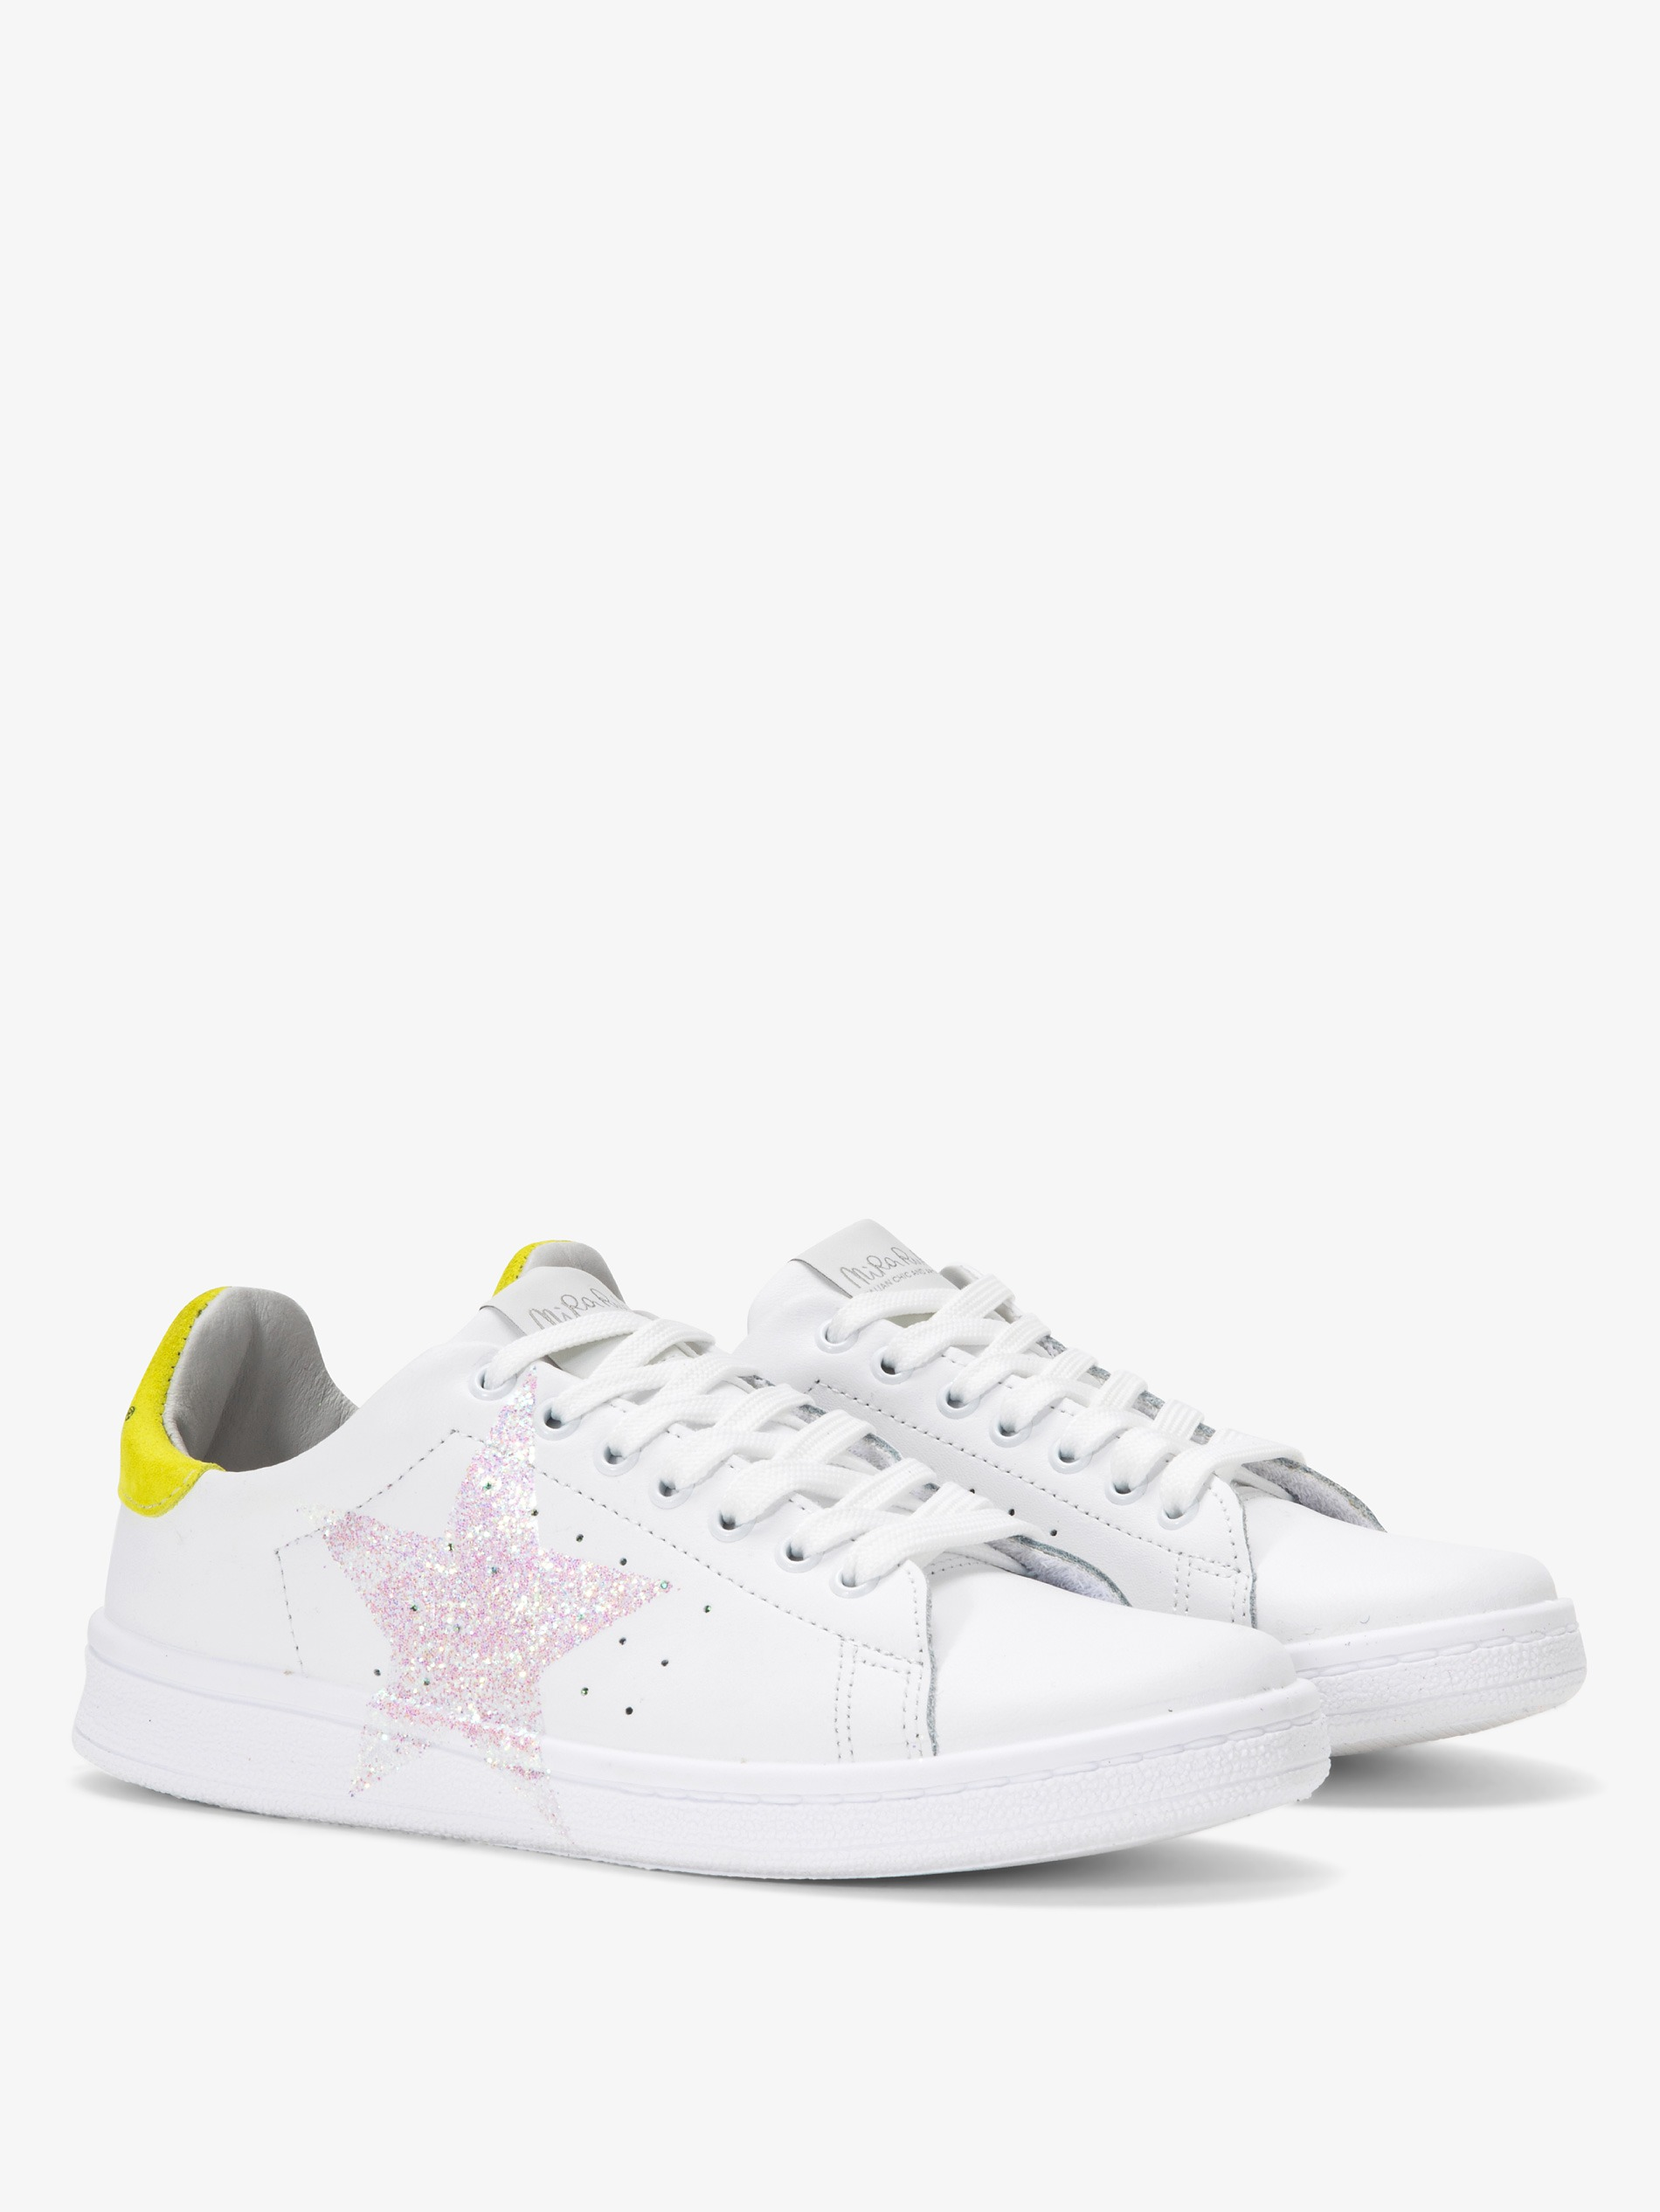 Fashion Style Cheap Online FOOTWEAR - Low-tops & sneakers Mother Of Pearl Reliable Sale Online GmDPm